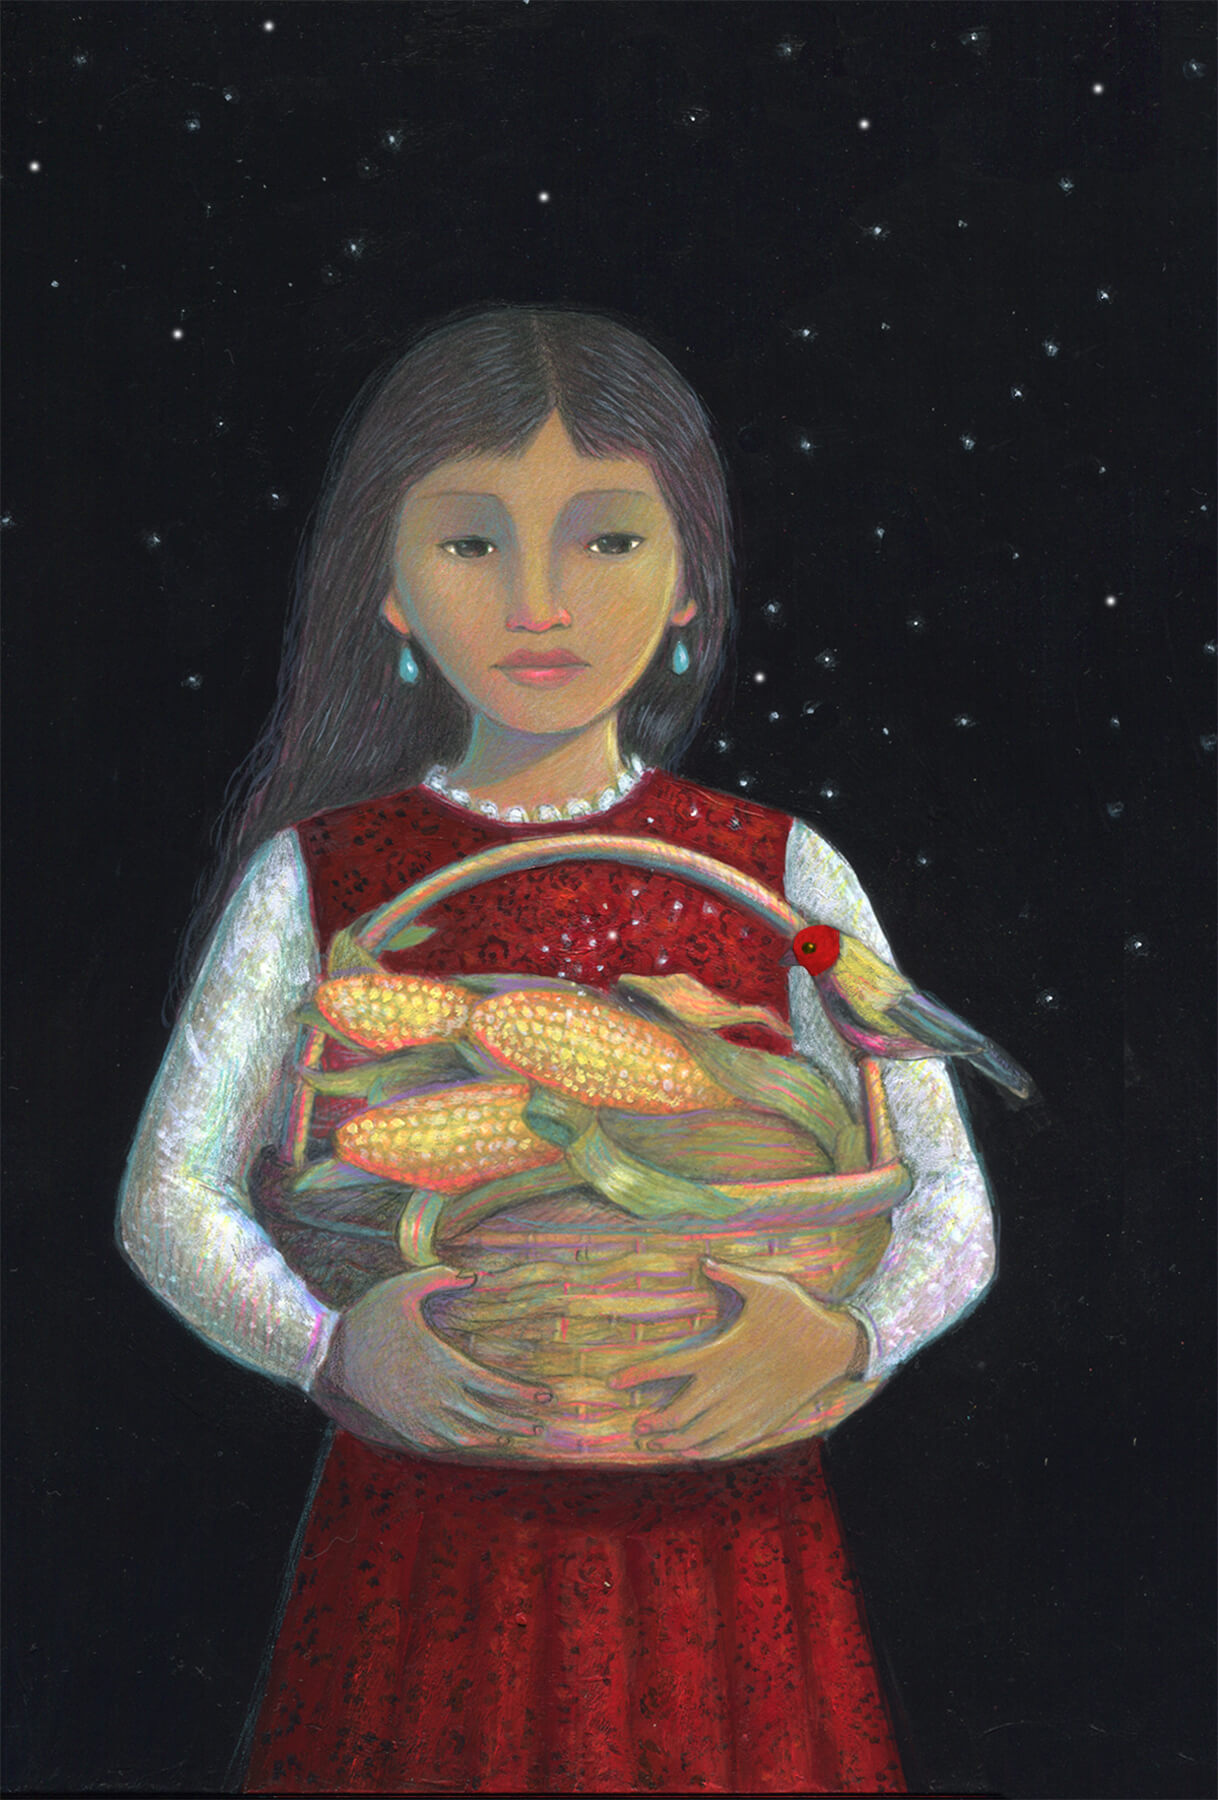 A painting of a young light brown skinned girl holding a large basket of corn. She has a dark red dress on and the background is a starry night.